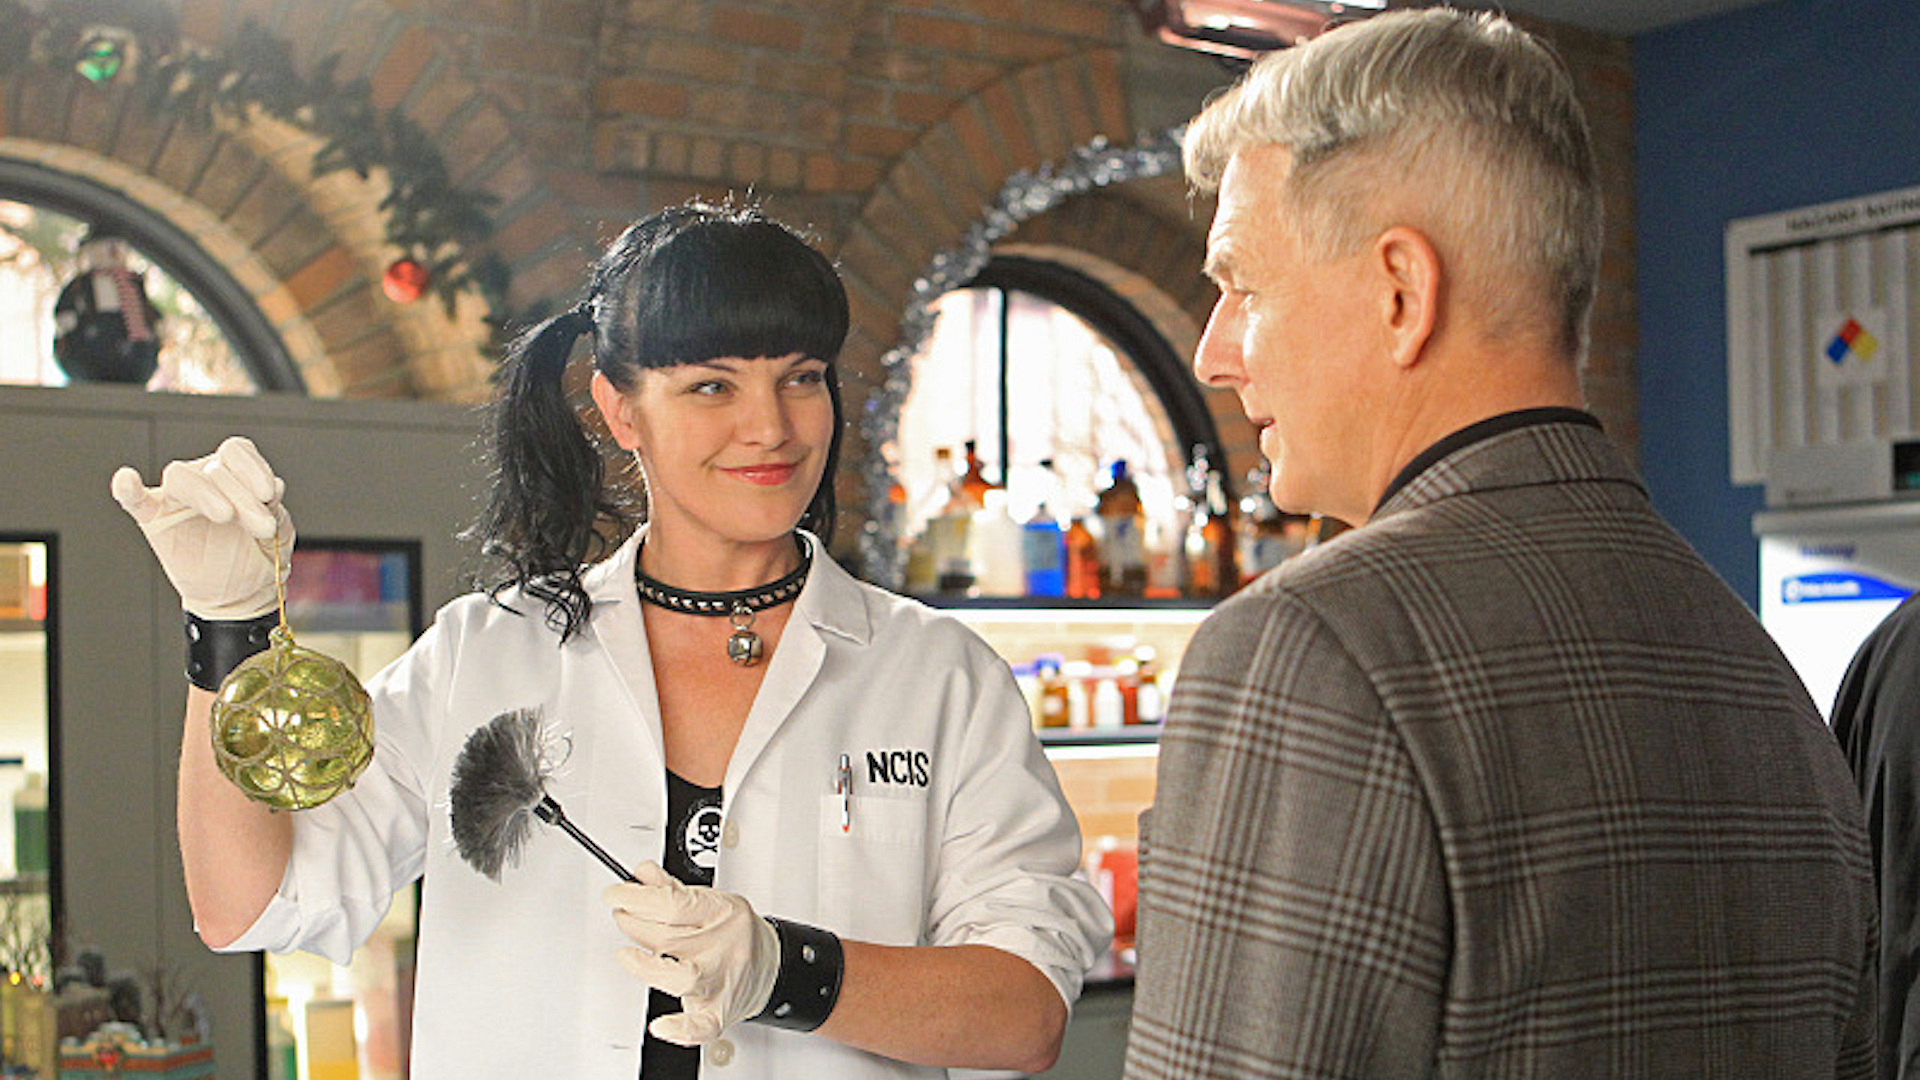 The answer is: Abby Sciuto